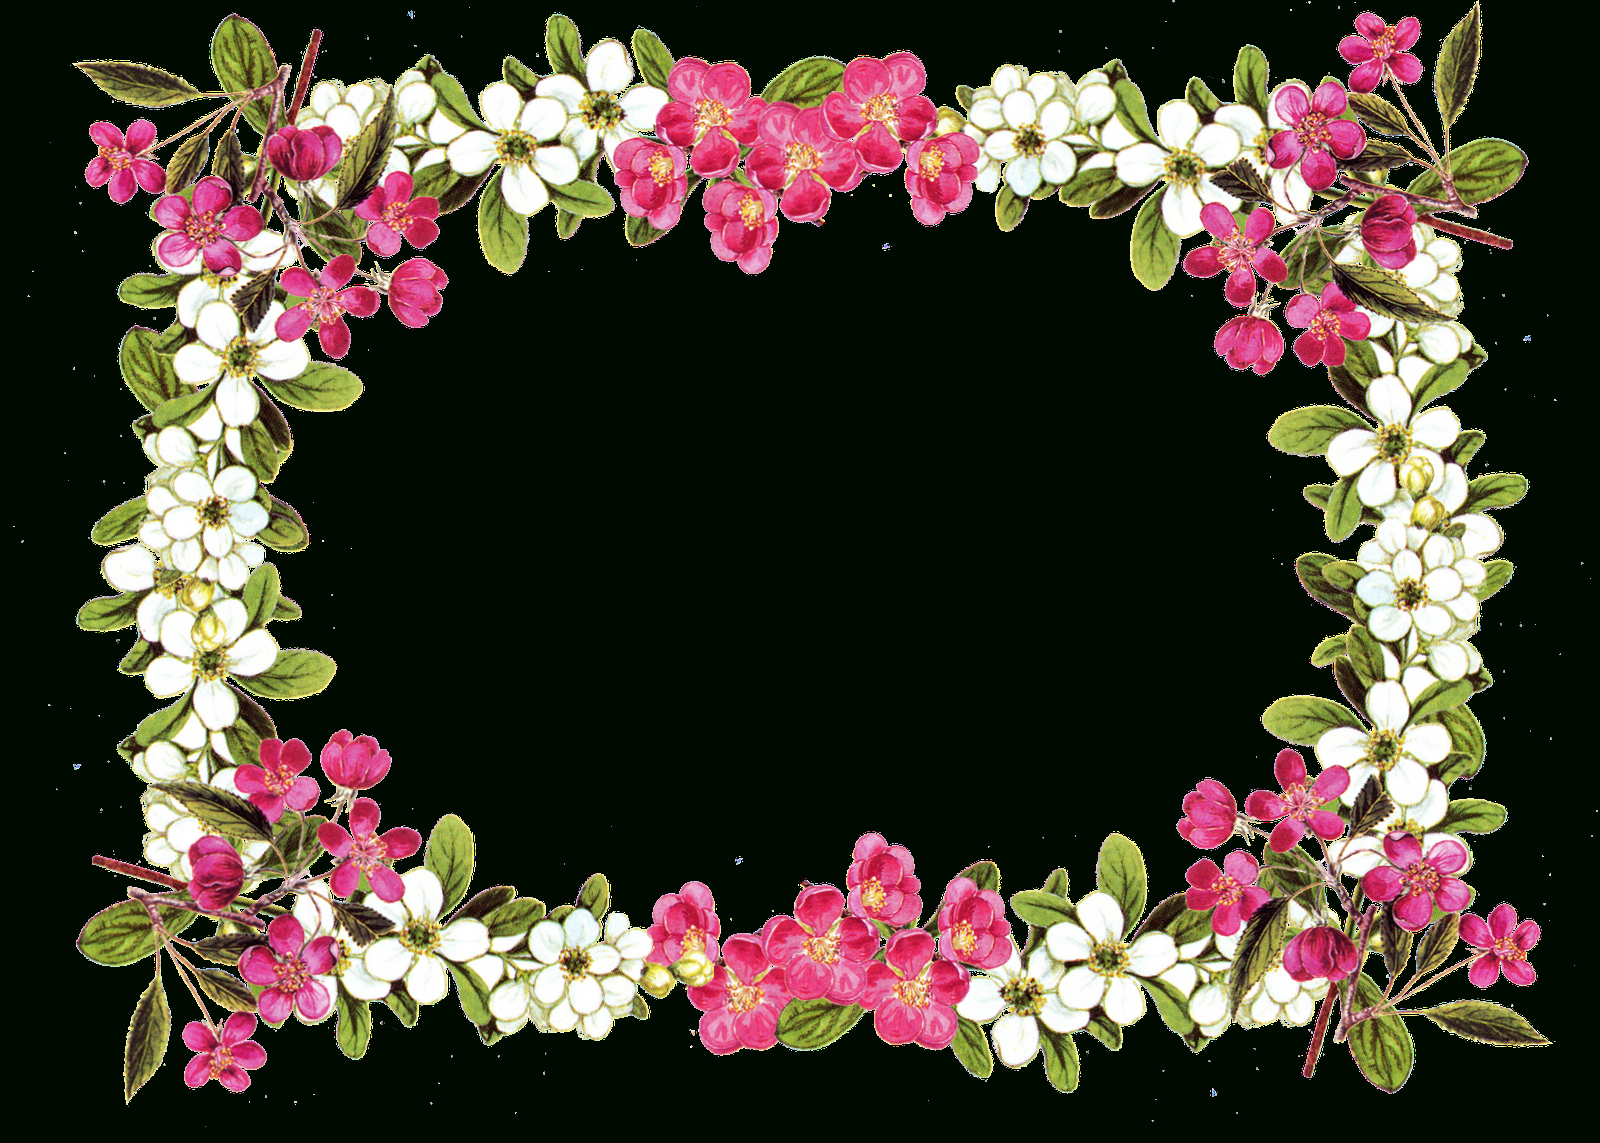 Wedding Border Clipart Free | Free Download Best Wedding Border - Free Printable Wedding Graphics